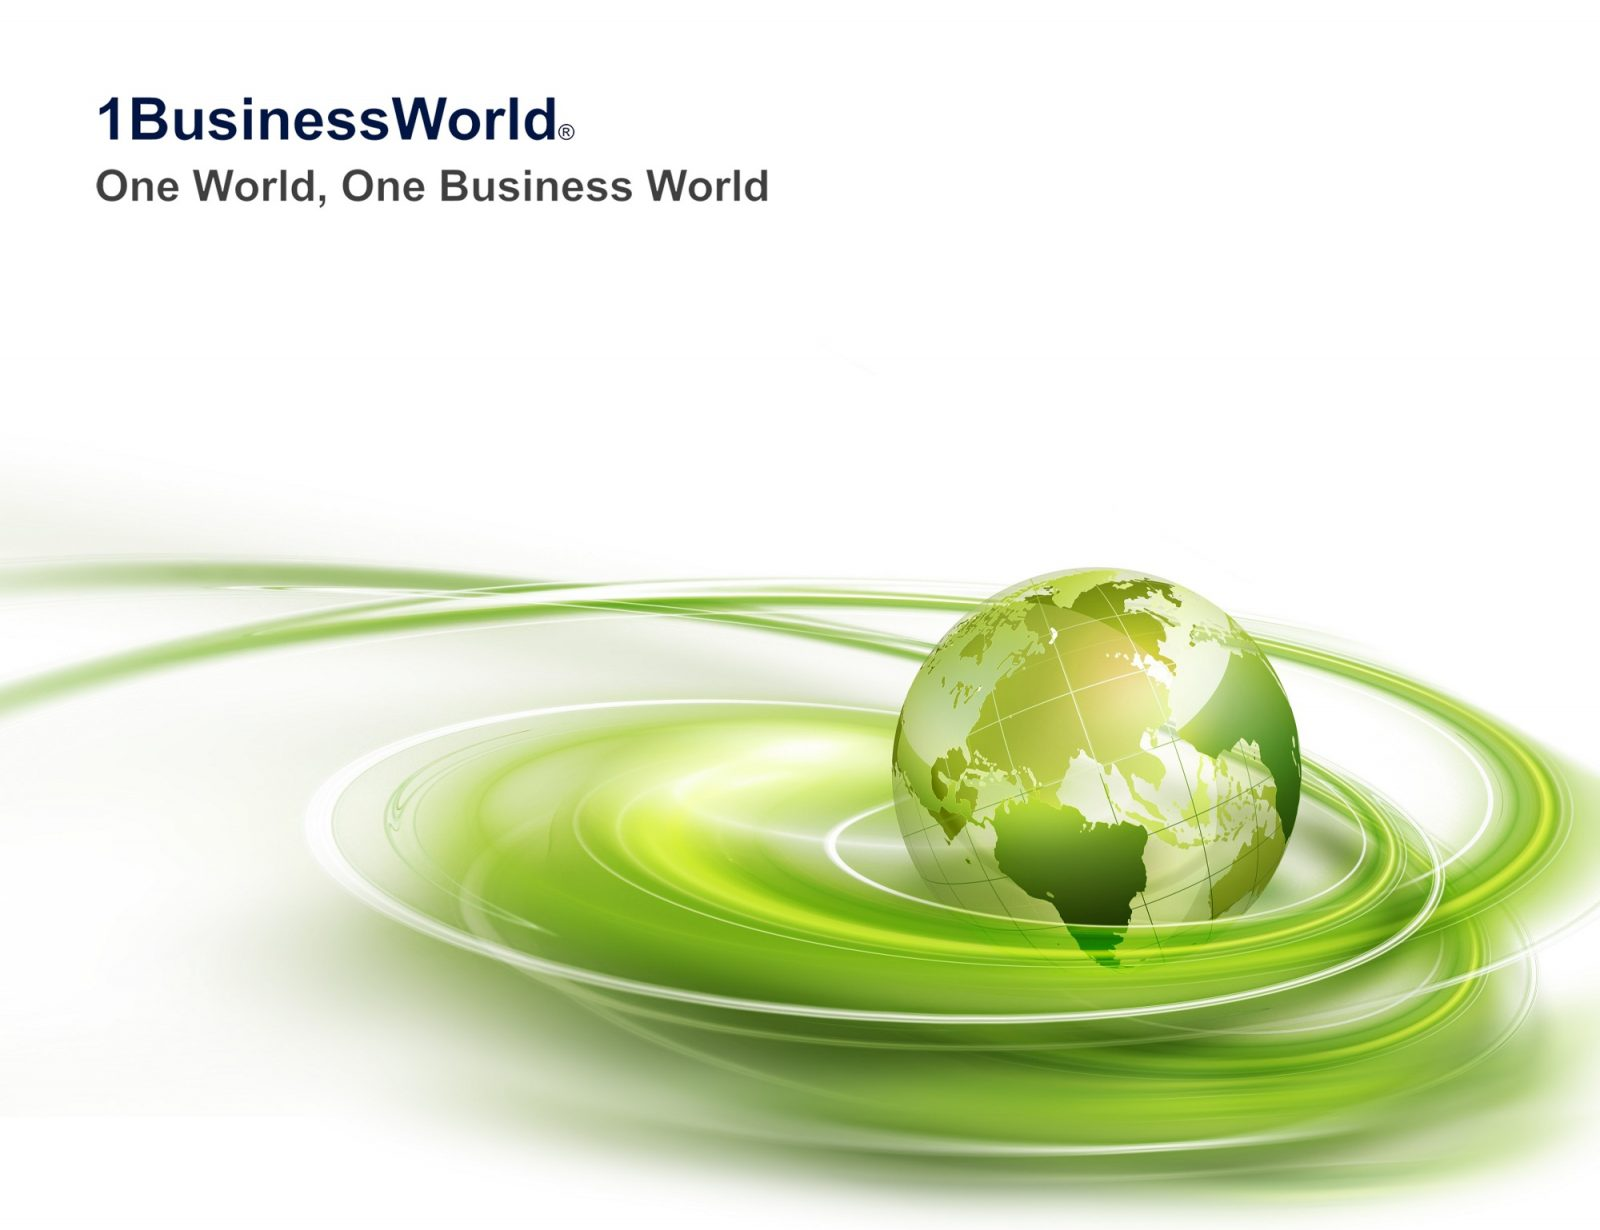 1BusinessWorld - Green Entrepreneur - One World, One Business World